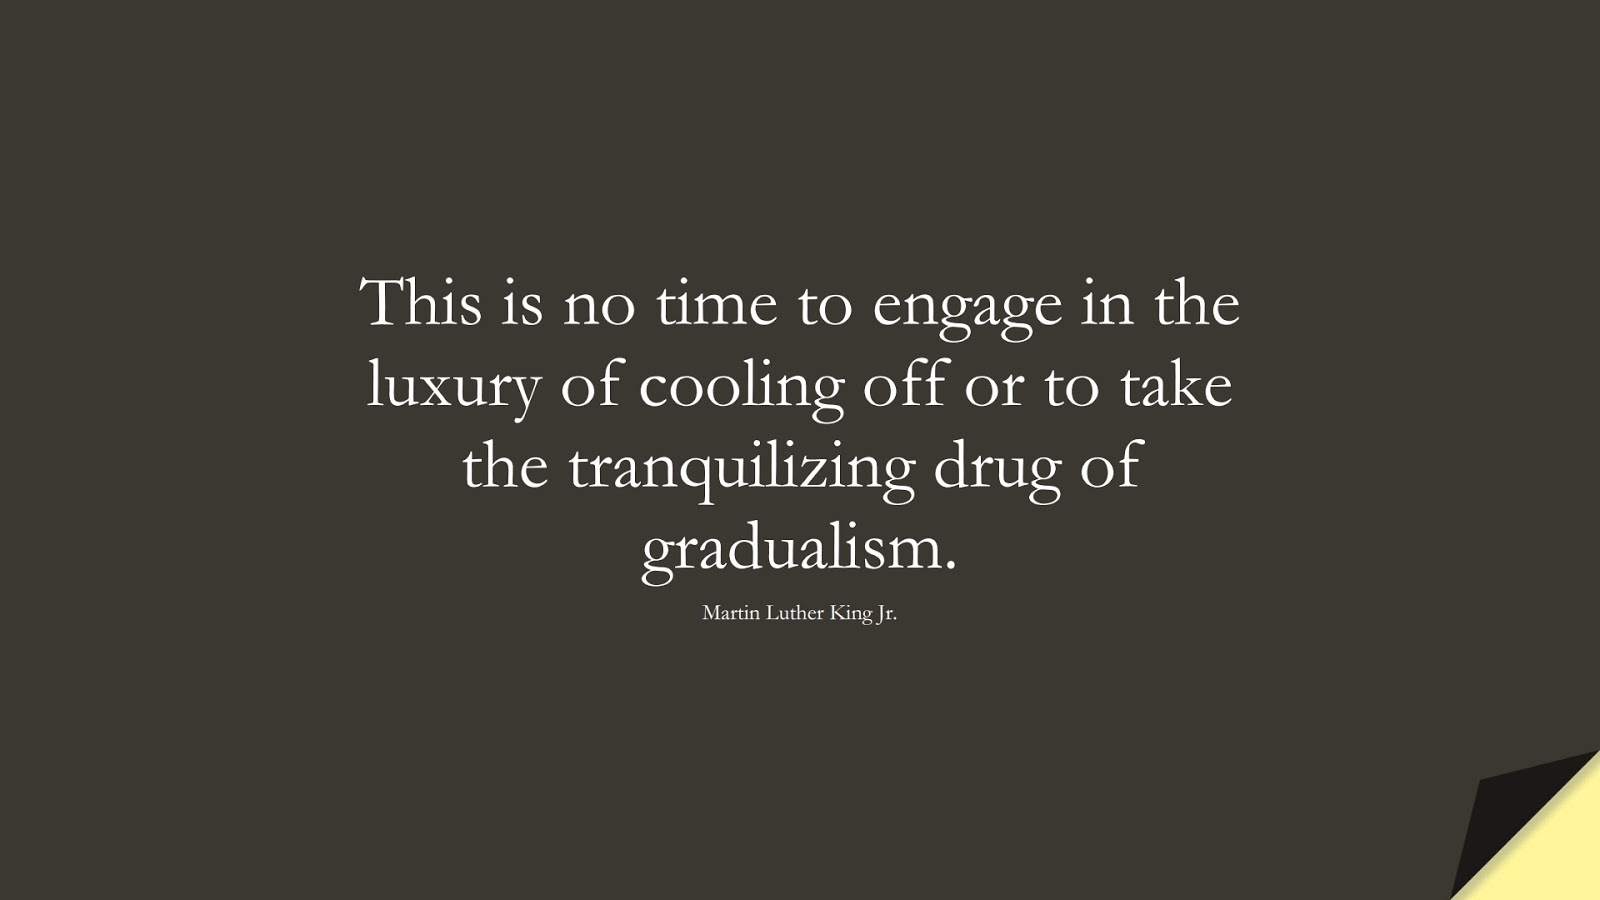 This is no time to engage in the luxury of cooling off or to take the tranquilizing drug of gradualism. (Martin Luther King Jr.);  #MartinLutherKingJrQuotes